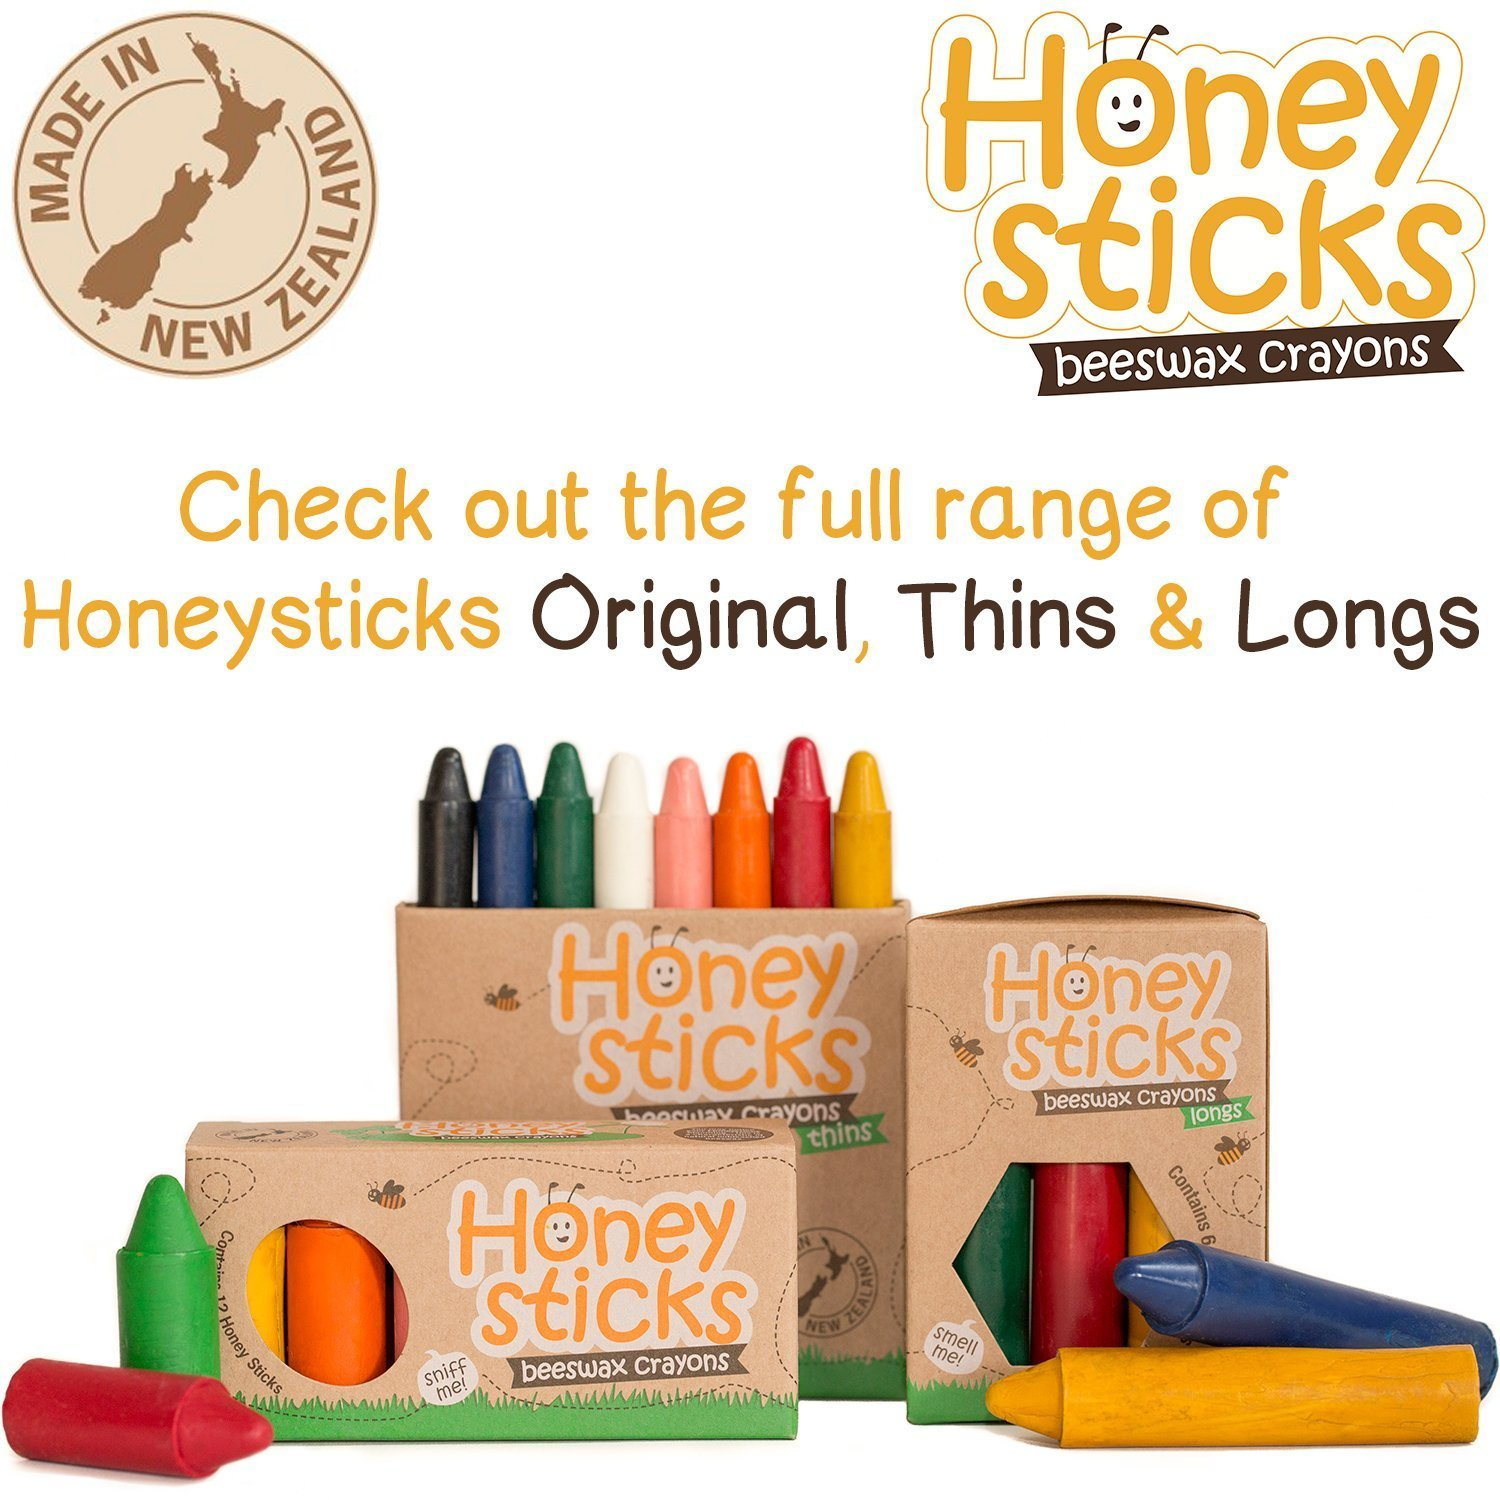 Honeysticks 100% Pure Beeswax Crayons Natural, Safe for Toddlers, Kids and Children, Handmade in New Zealand, for 1 Year Plus (12 Pack) by Honeysticks (Image #6)